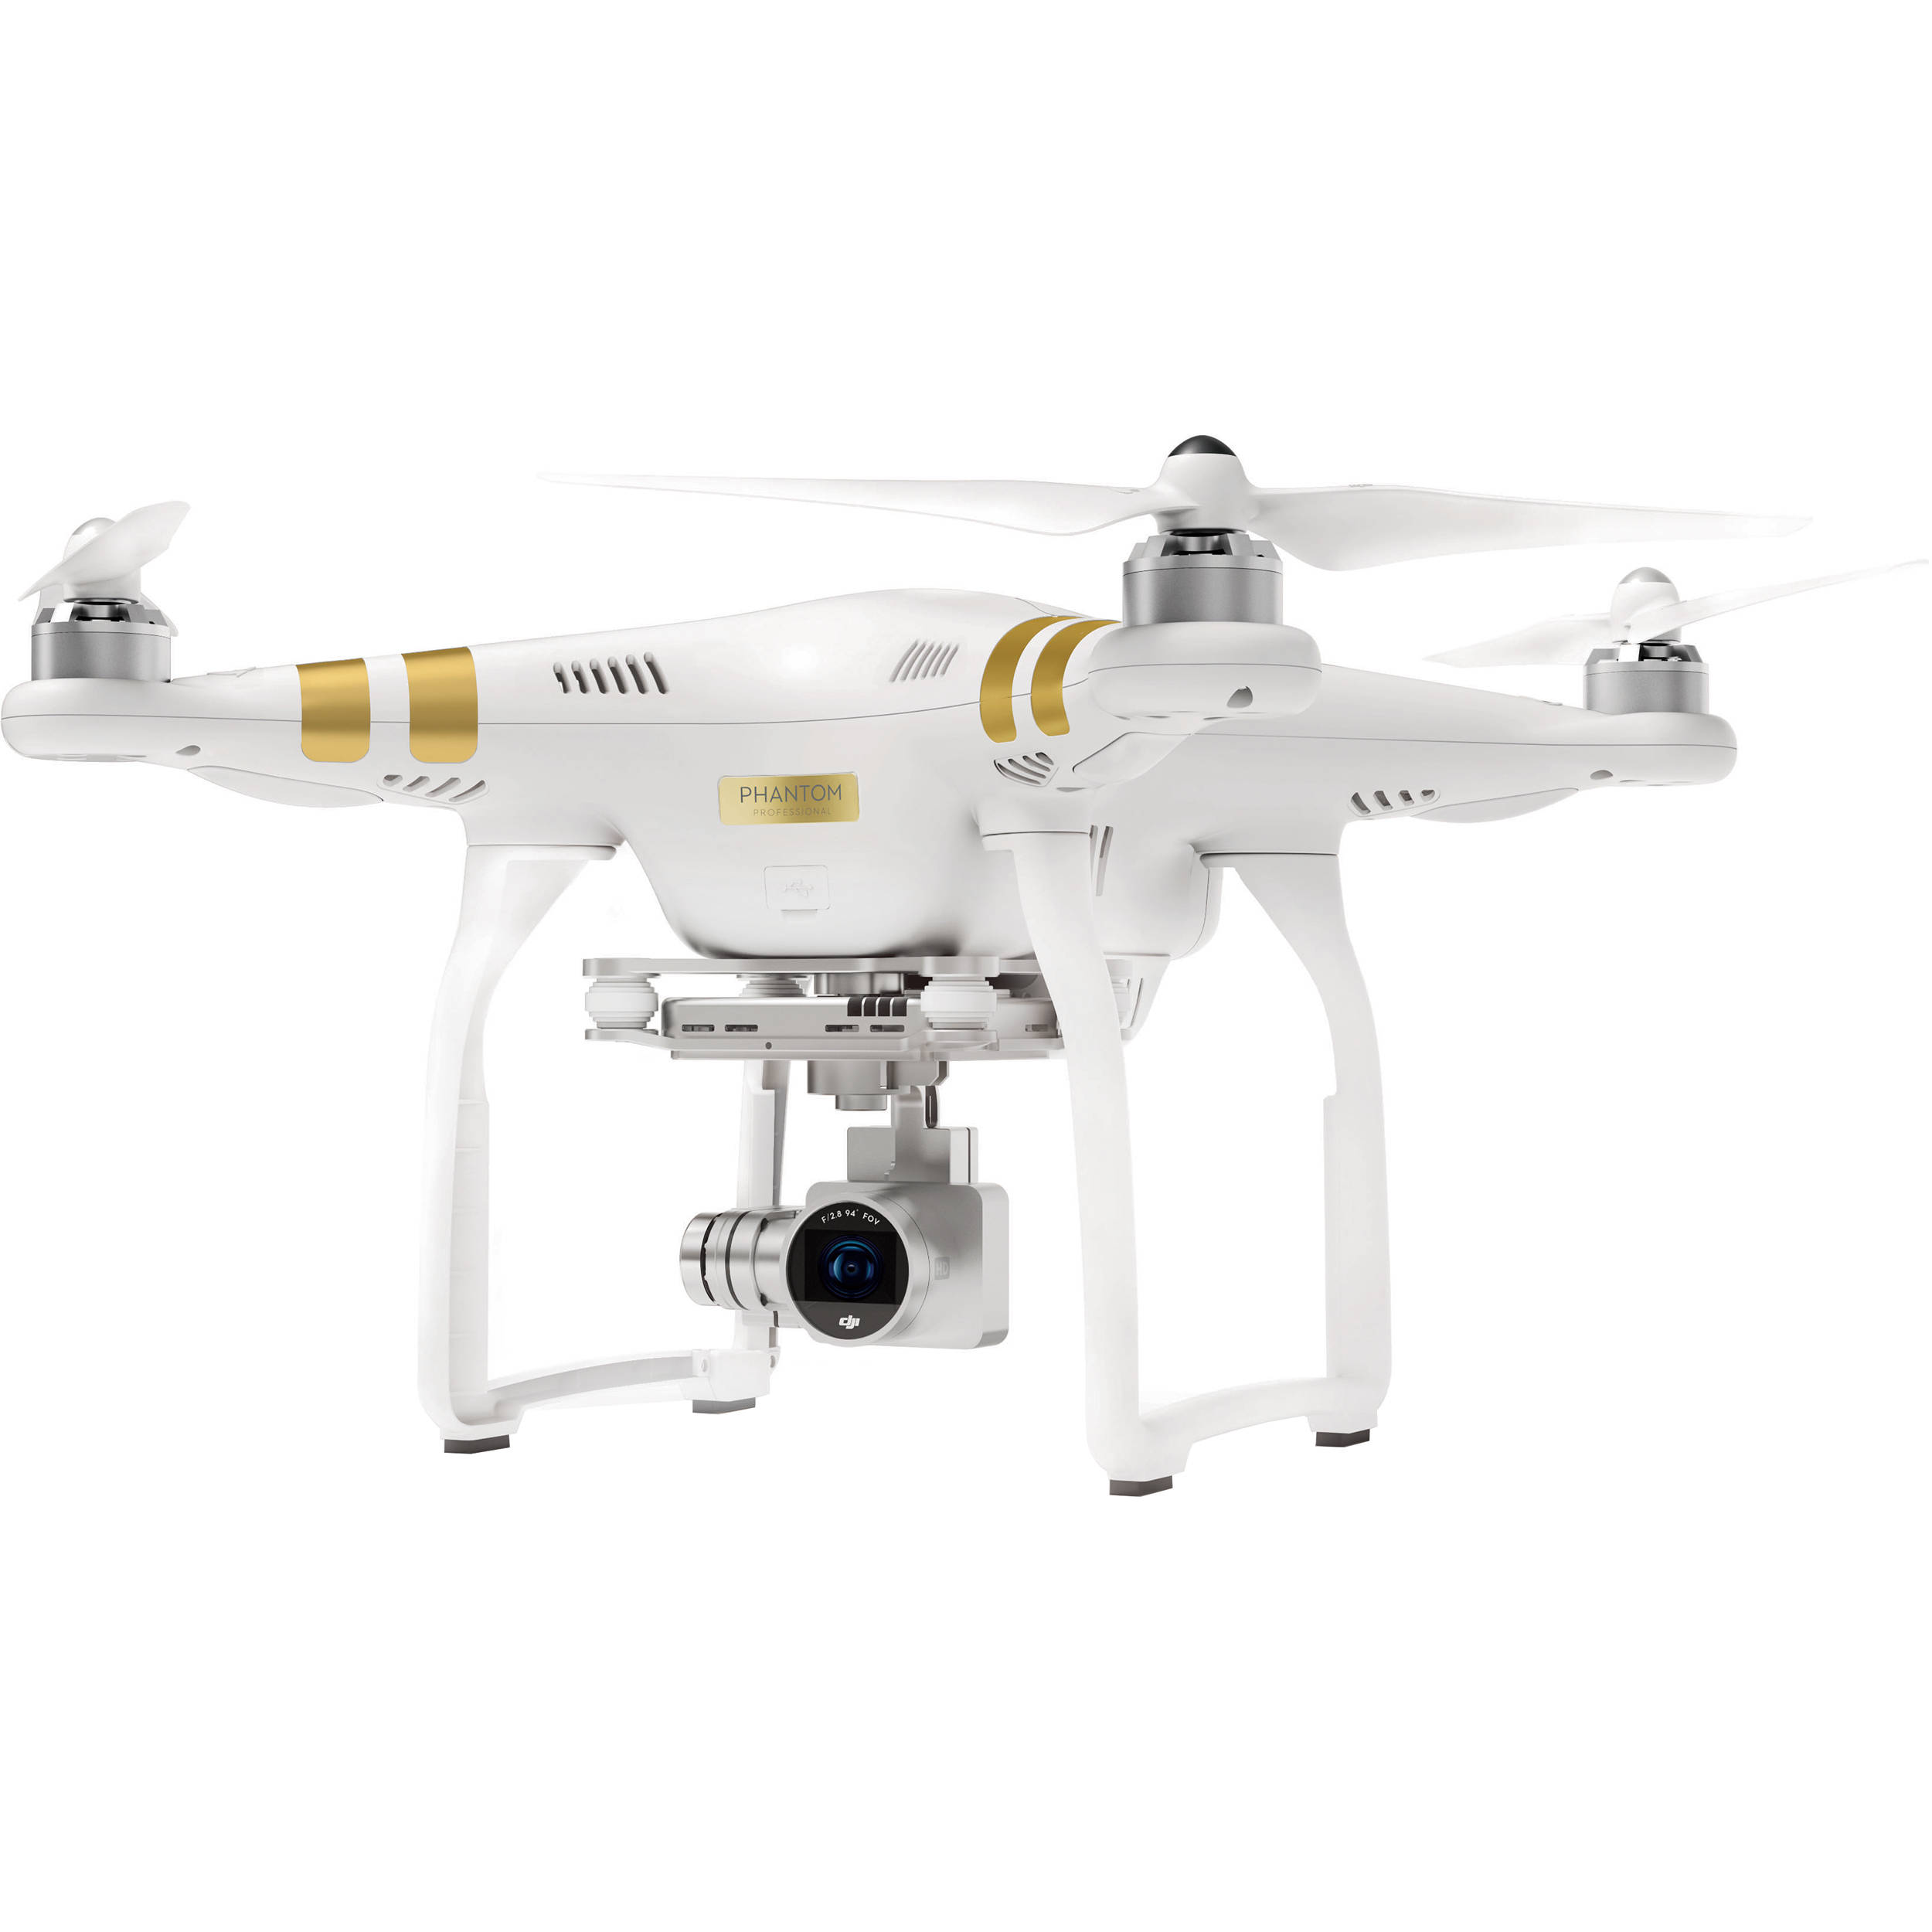 DJI Phantom 3 Professional Quadcopter With 4K Camera And Axis Gimbal